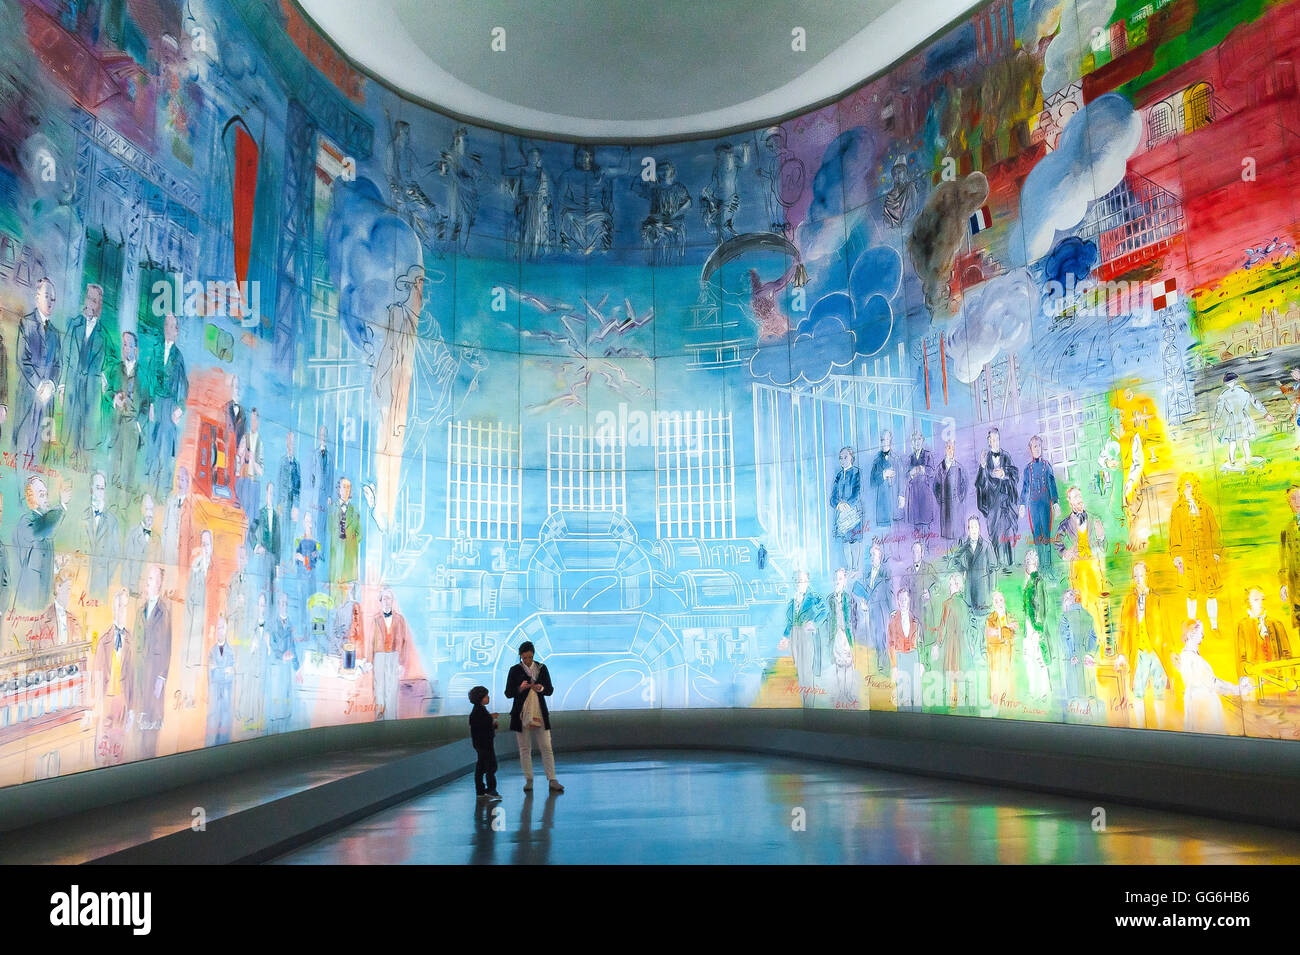 "Paris art museum, a giant illuminated mural of Raoul Duffy's ""La Fee Electricite"" in the Musee d'Art Moderne de Stock Photo"